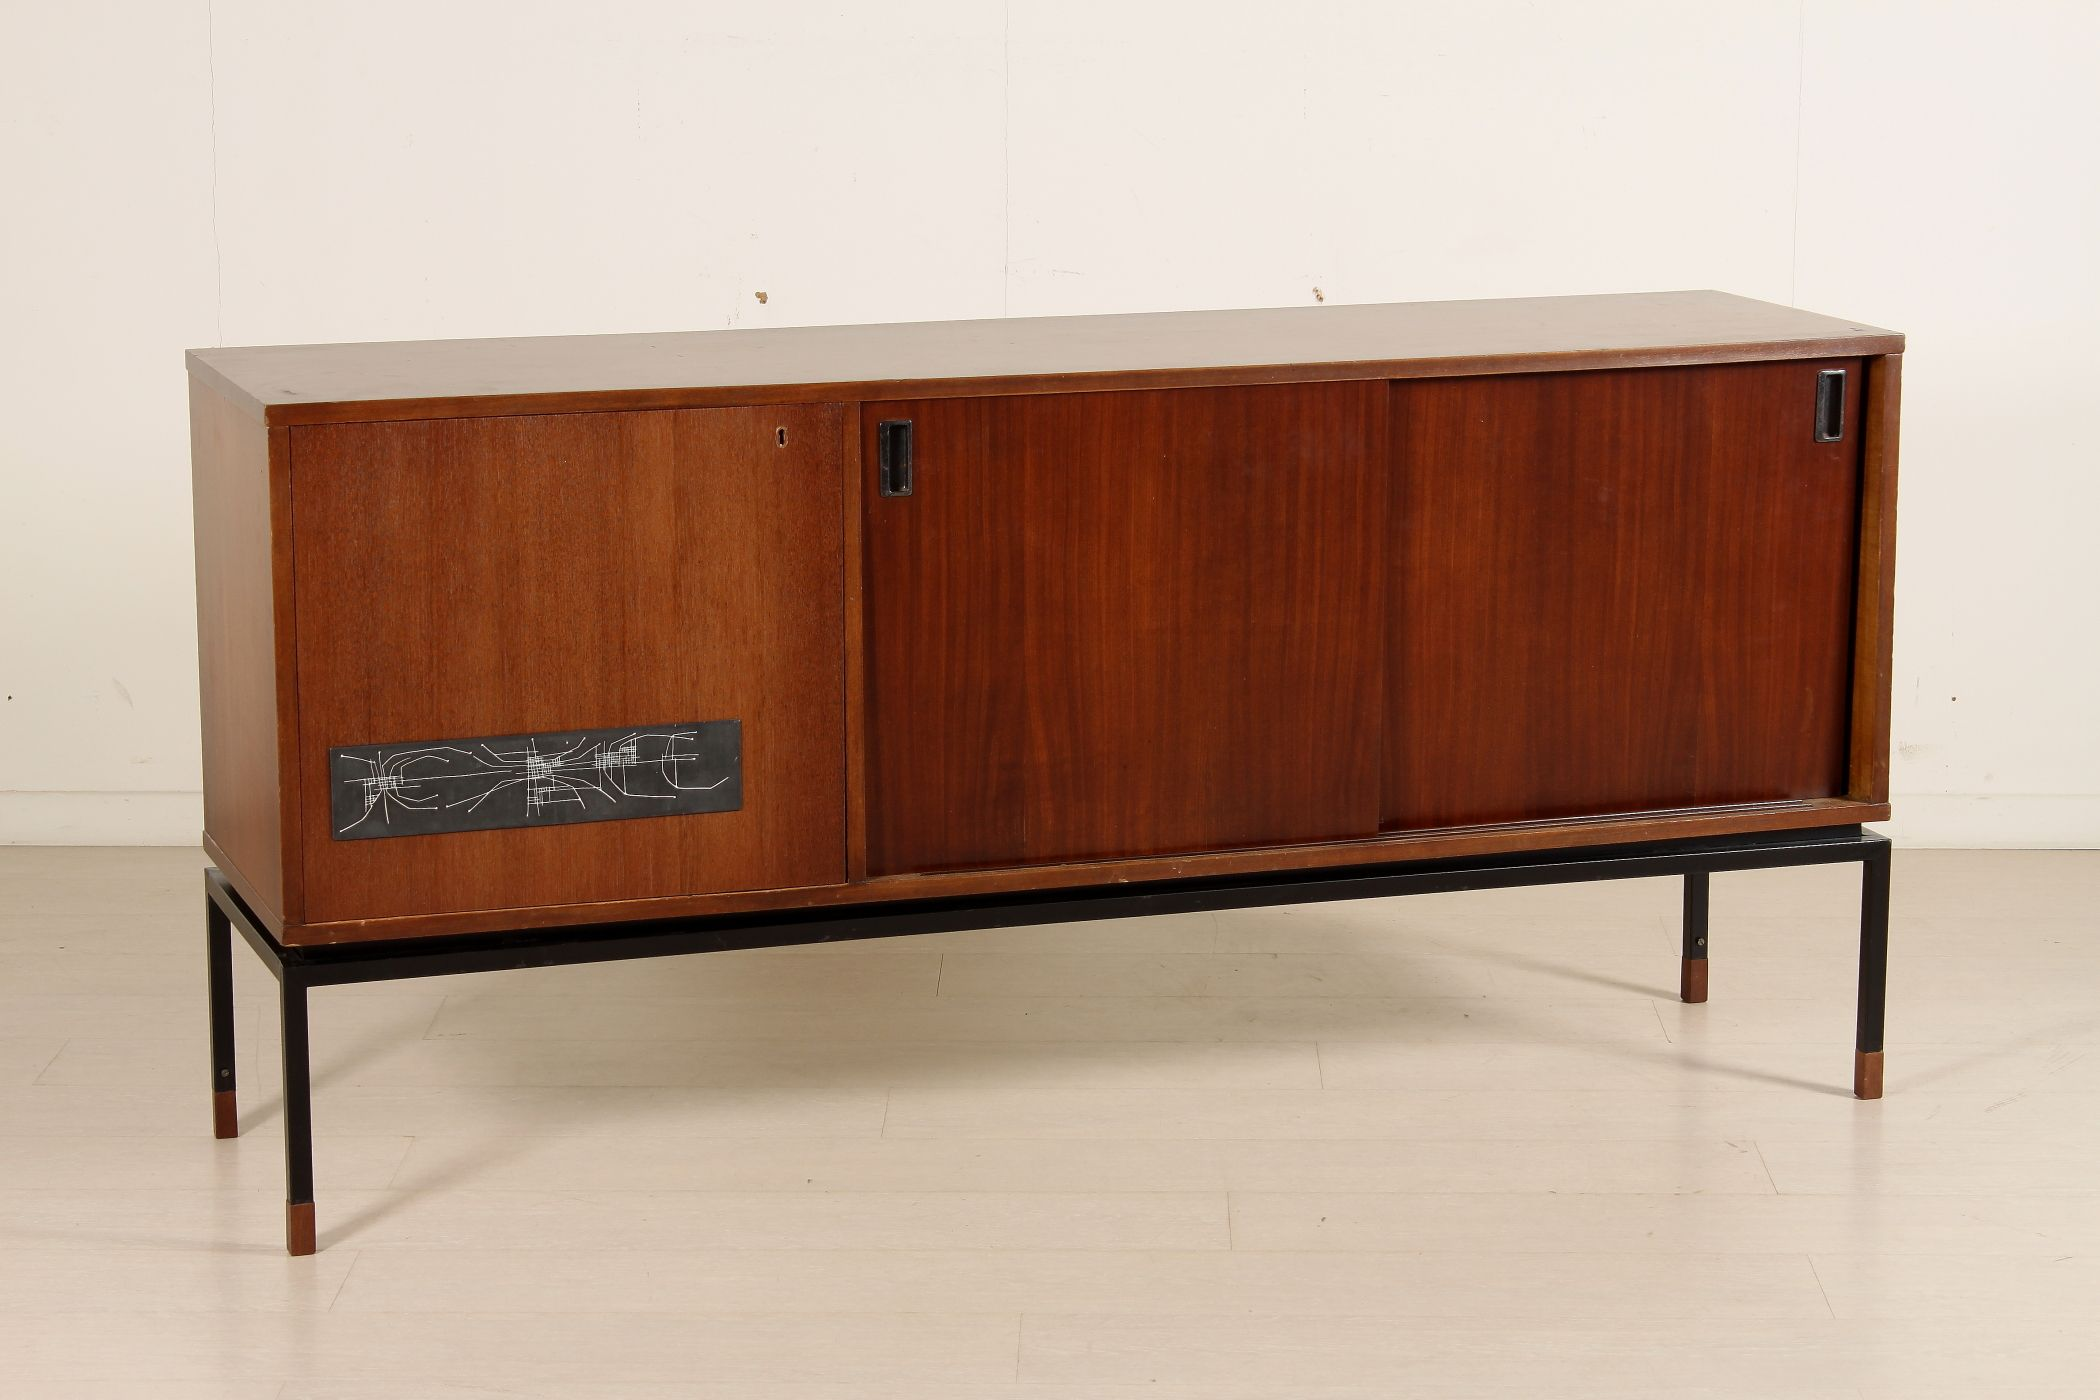 Beautiful sideboard anni anticonline antique midcentury for Arredo bagno anni 50